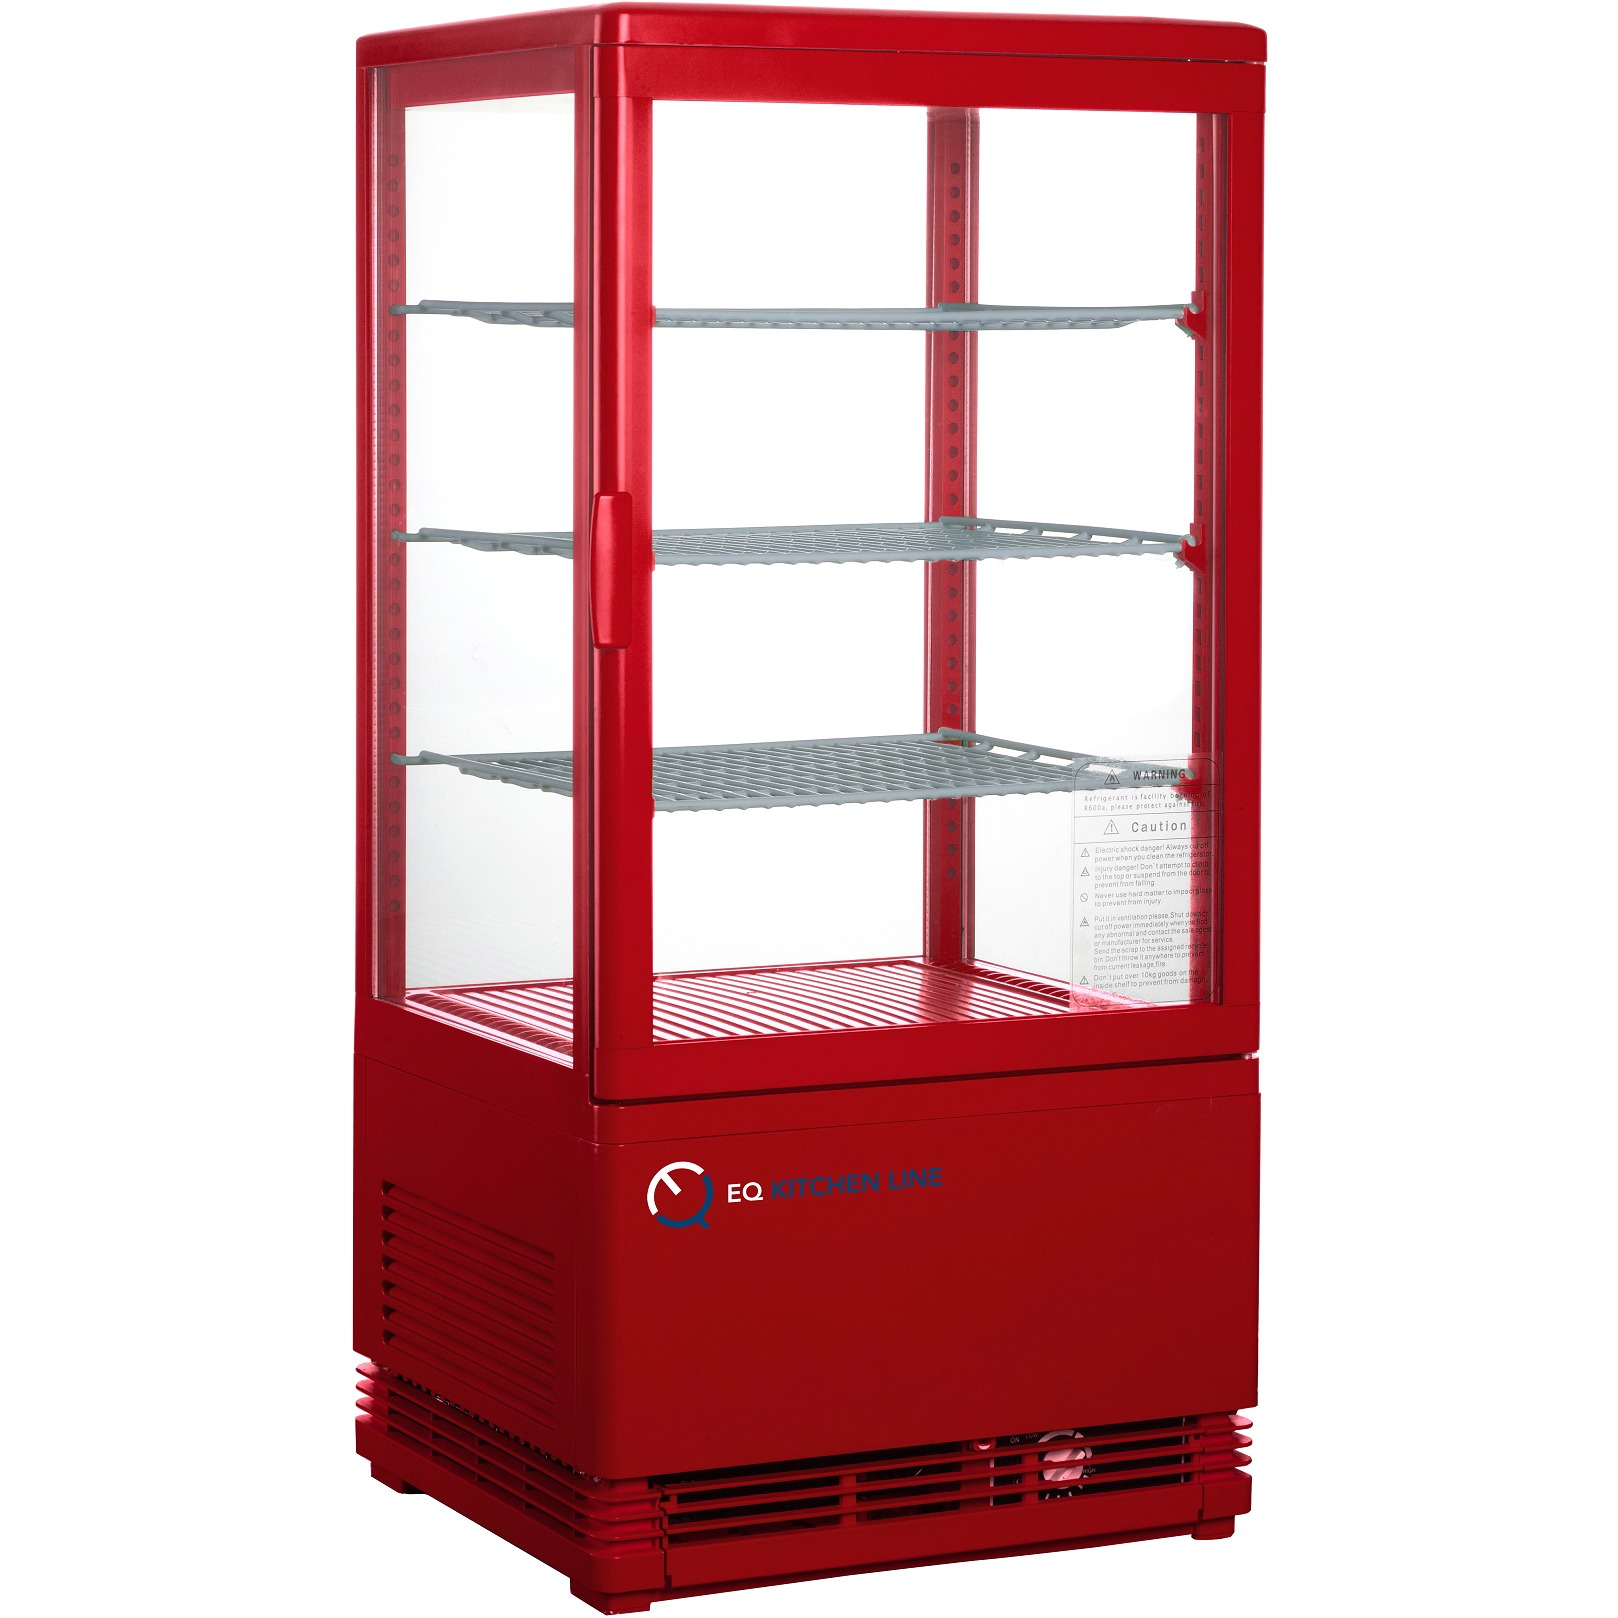 Superieur EQ Kitchen Line RT 68L Commercial Refrigerated Glass Beverage Display Case,  Red